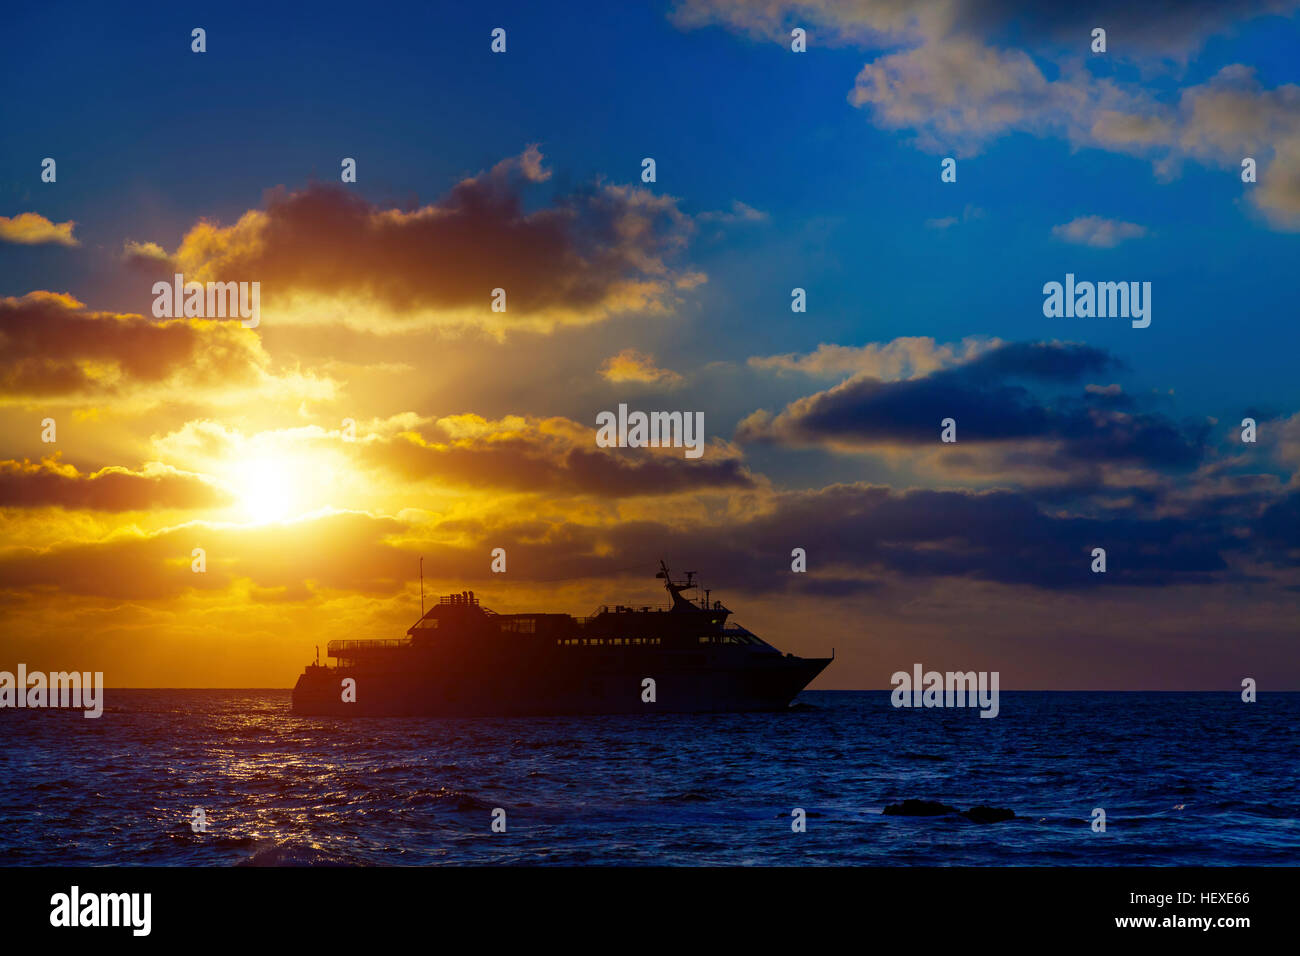 Cruise liner at sunset. - Stock Image